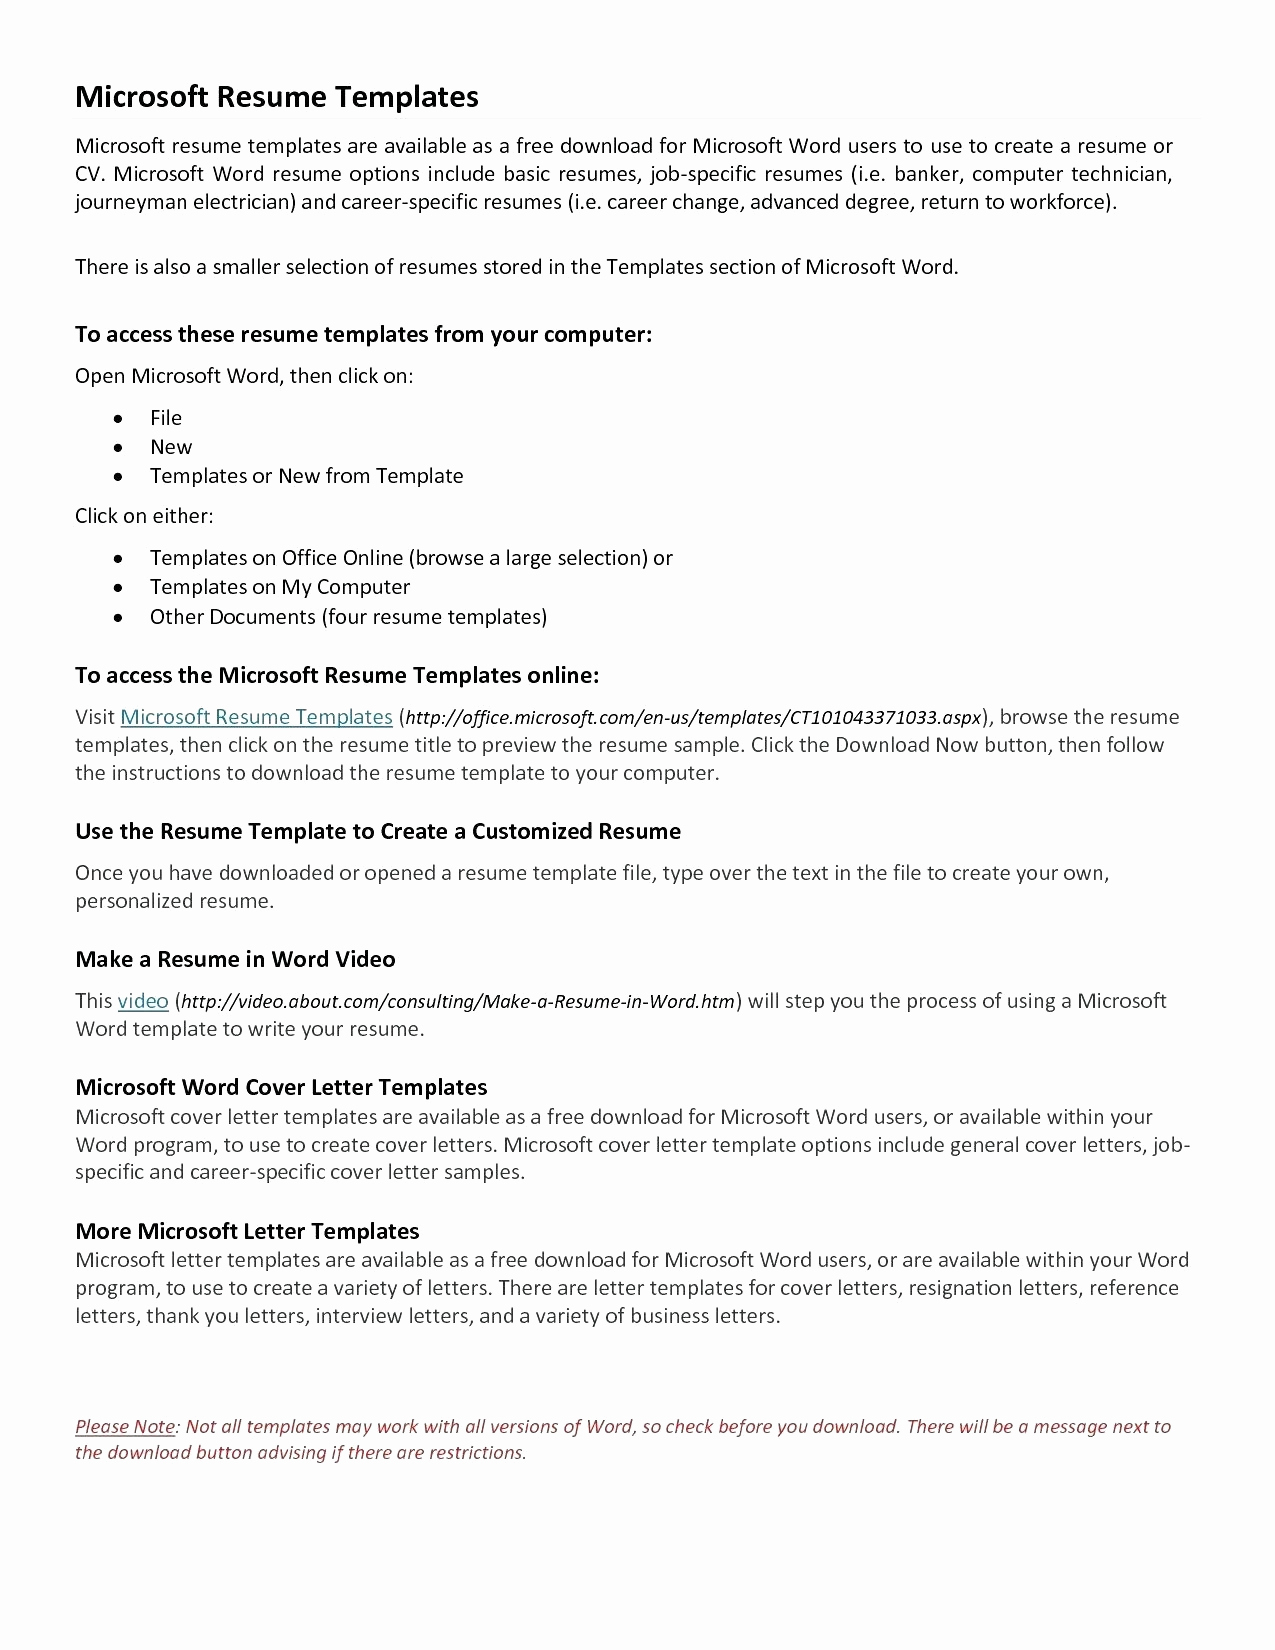 General Cover Letter Template Free - Free Cover Letter Templates for Resumes Fresh Resume Template